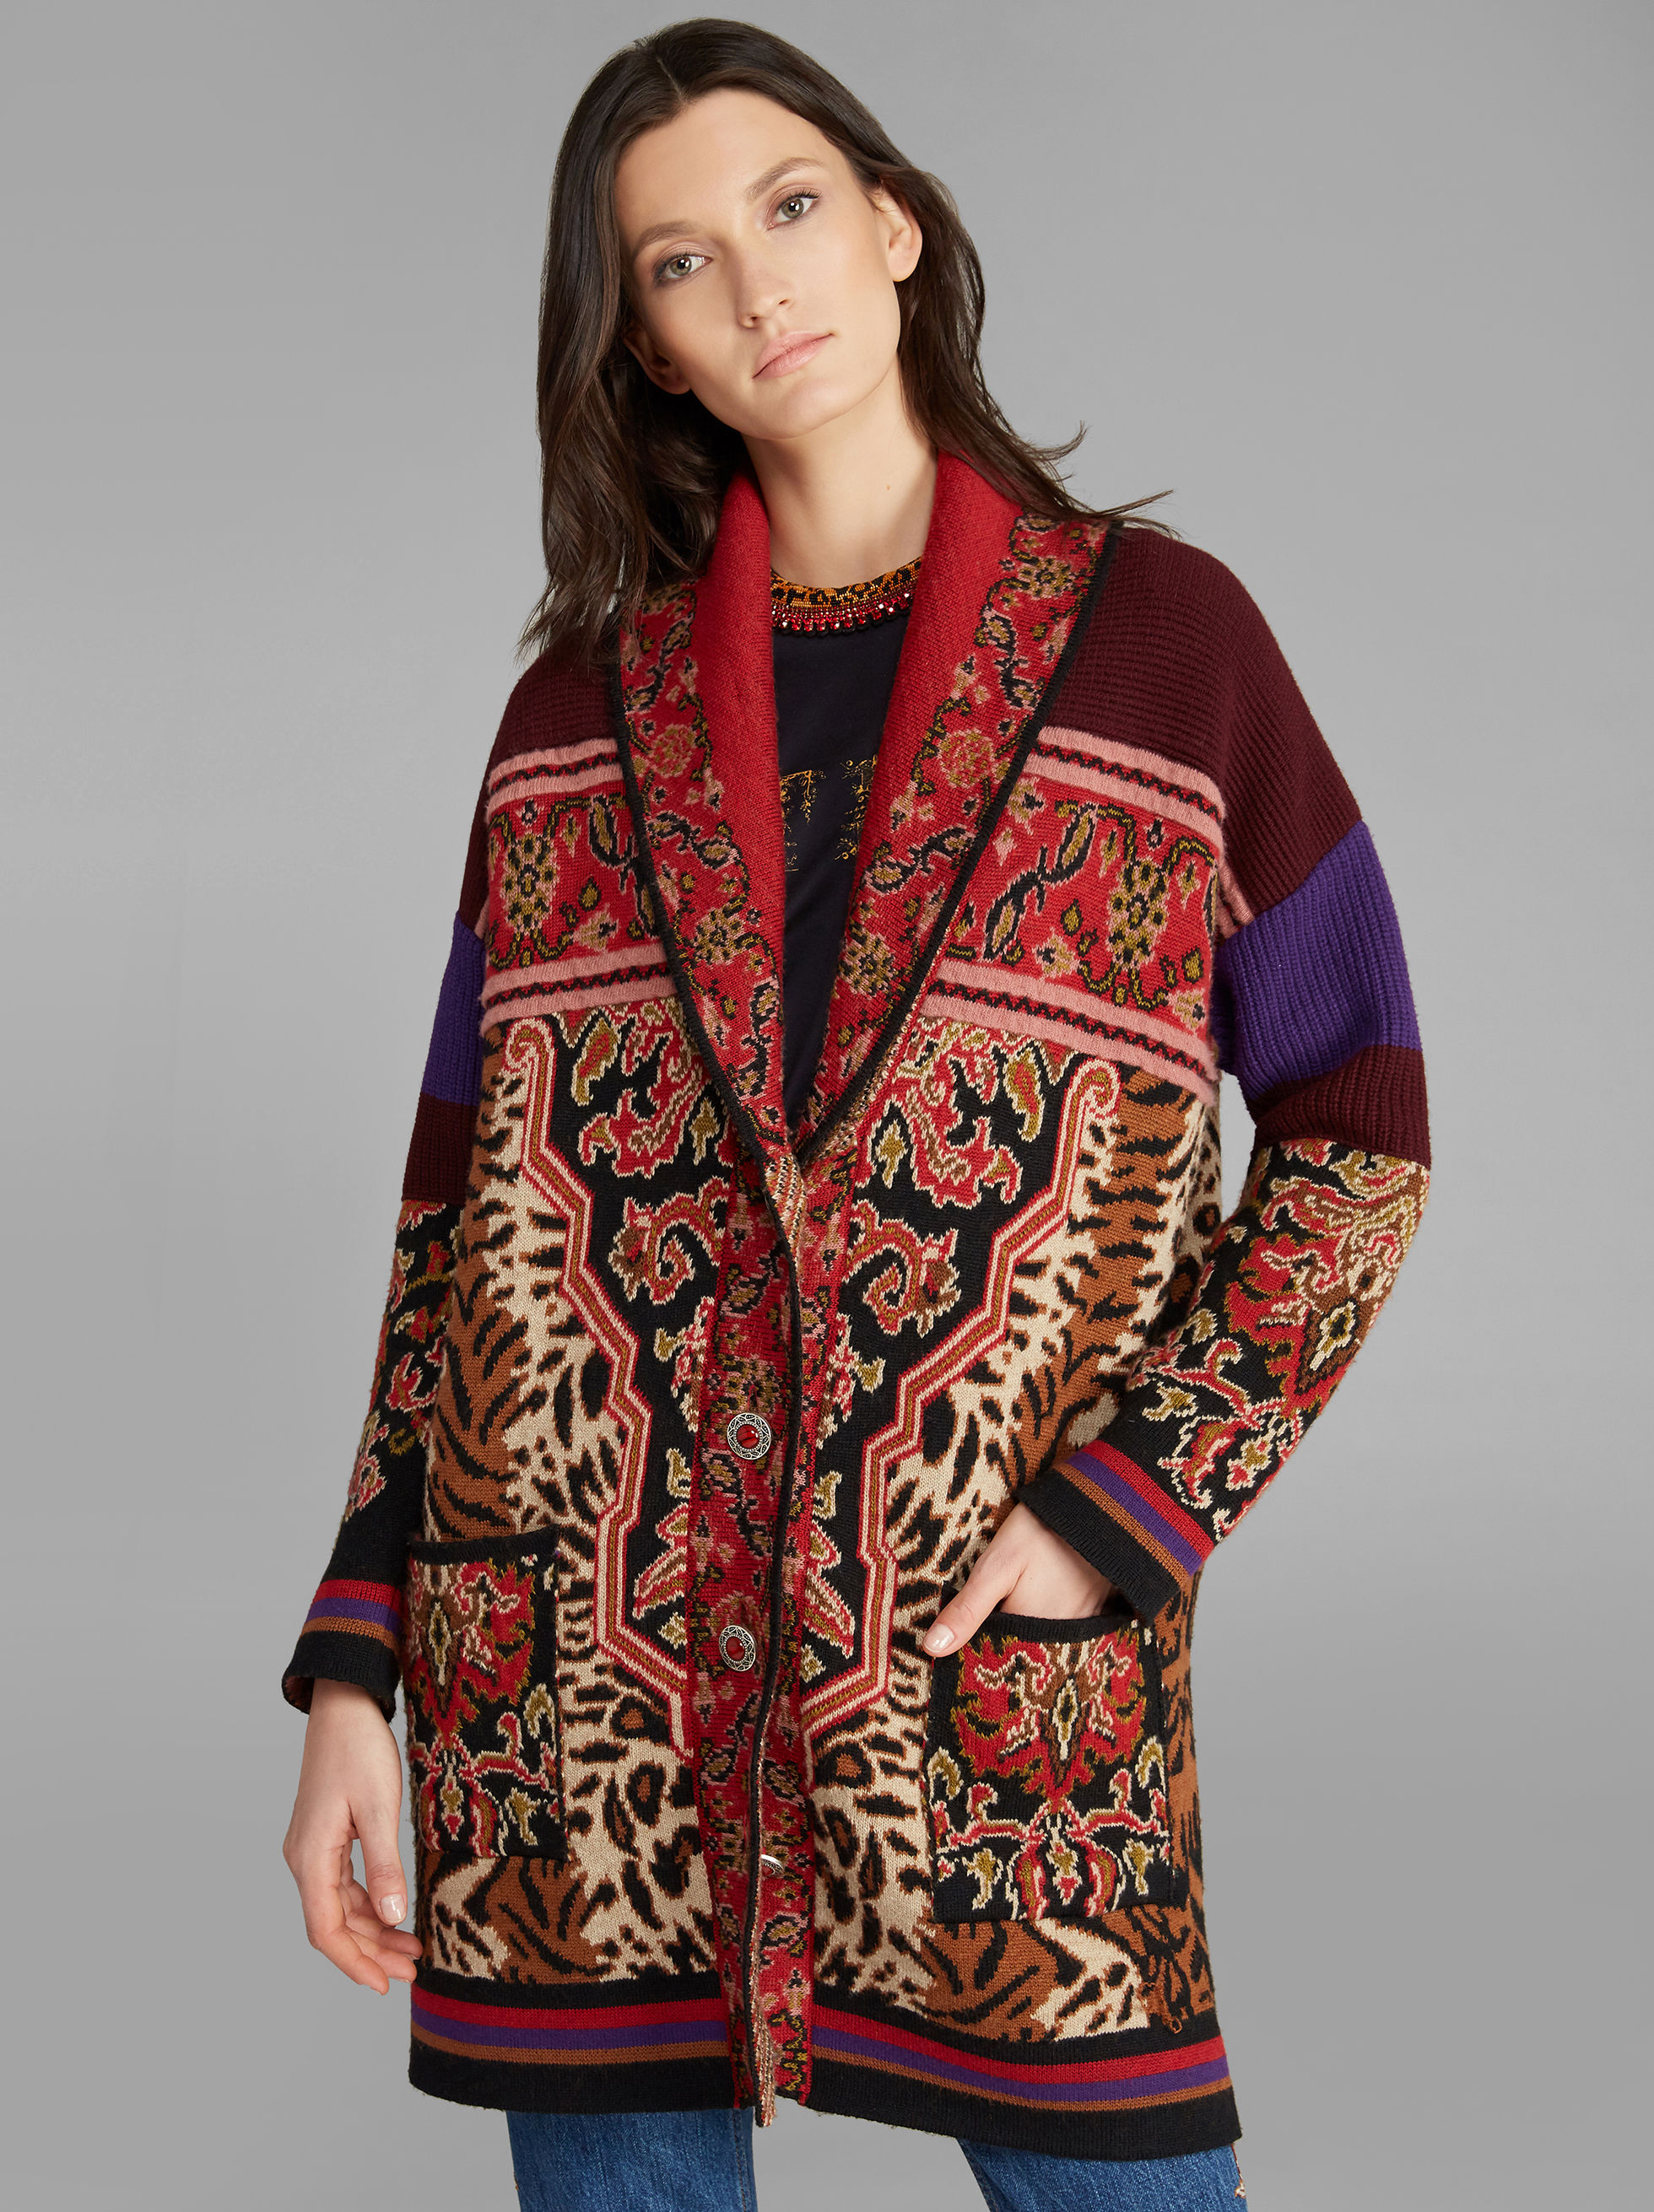 ANIMAL AND CARPET-PRINT COAT